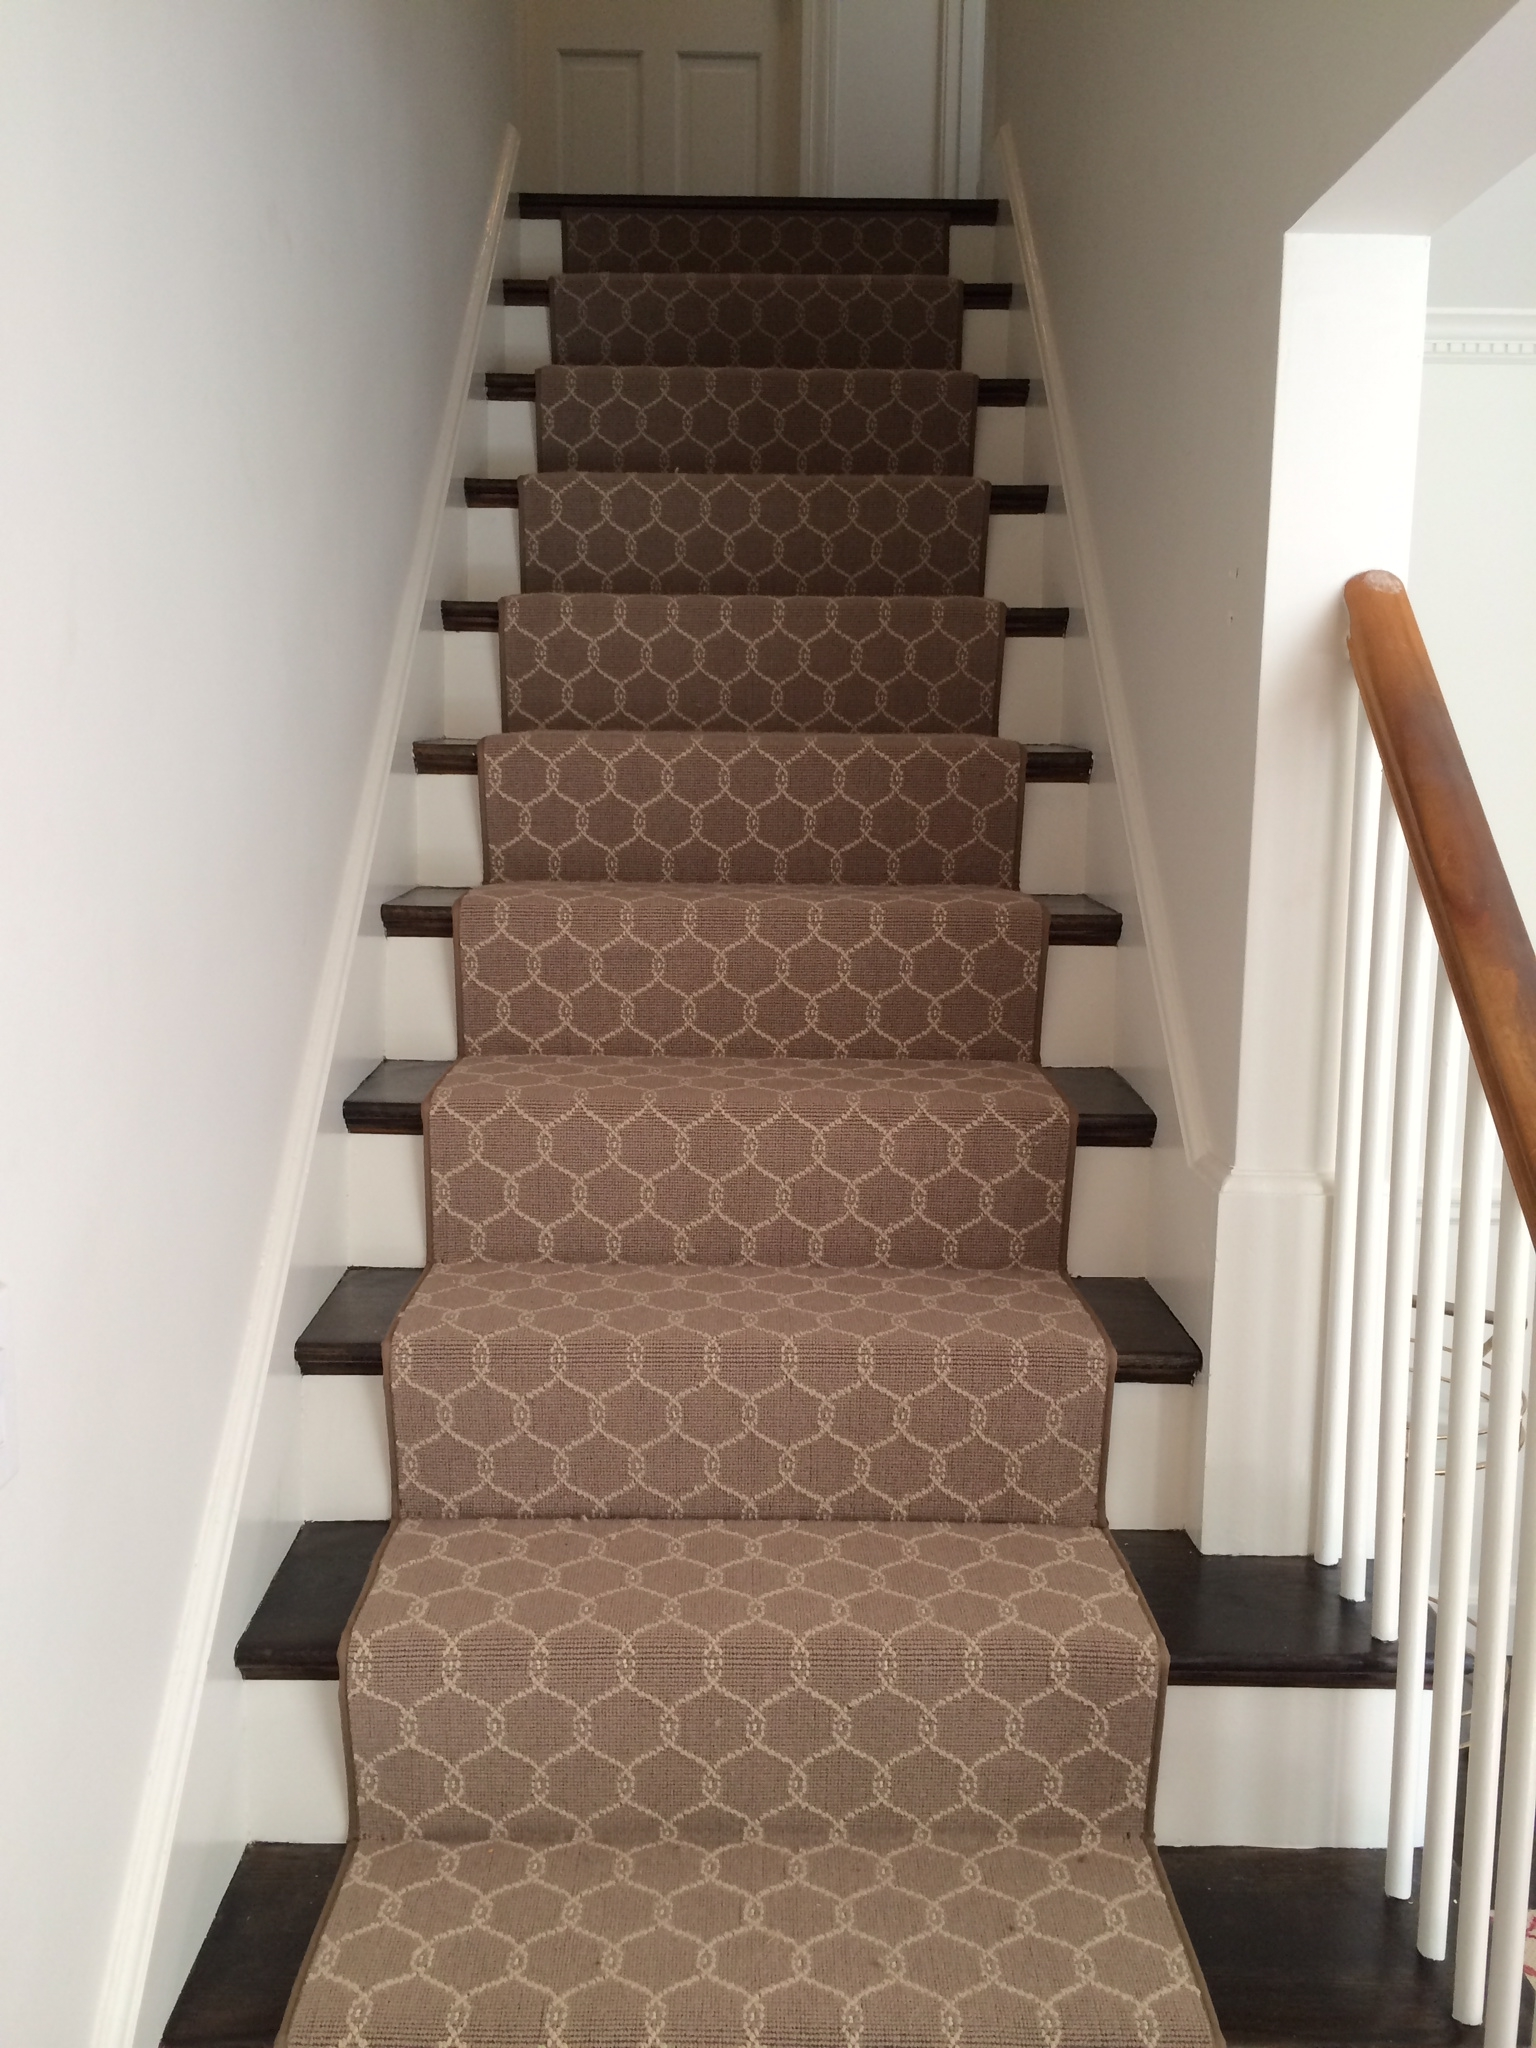 Stair Carpet Buyers Guide Carpet Workroom   Rug Runners For Stairs   Narrow   Landing   Victorian   Traditional   Persian